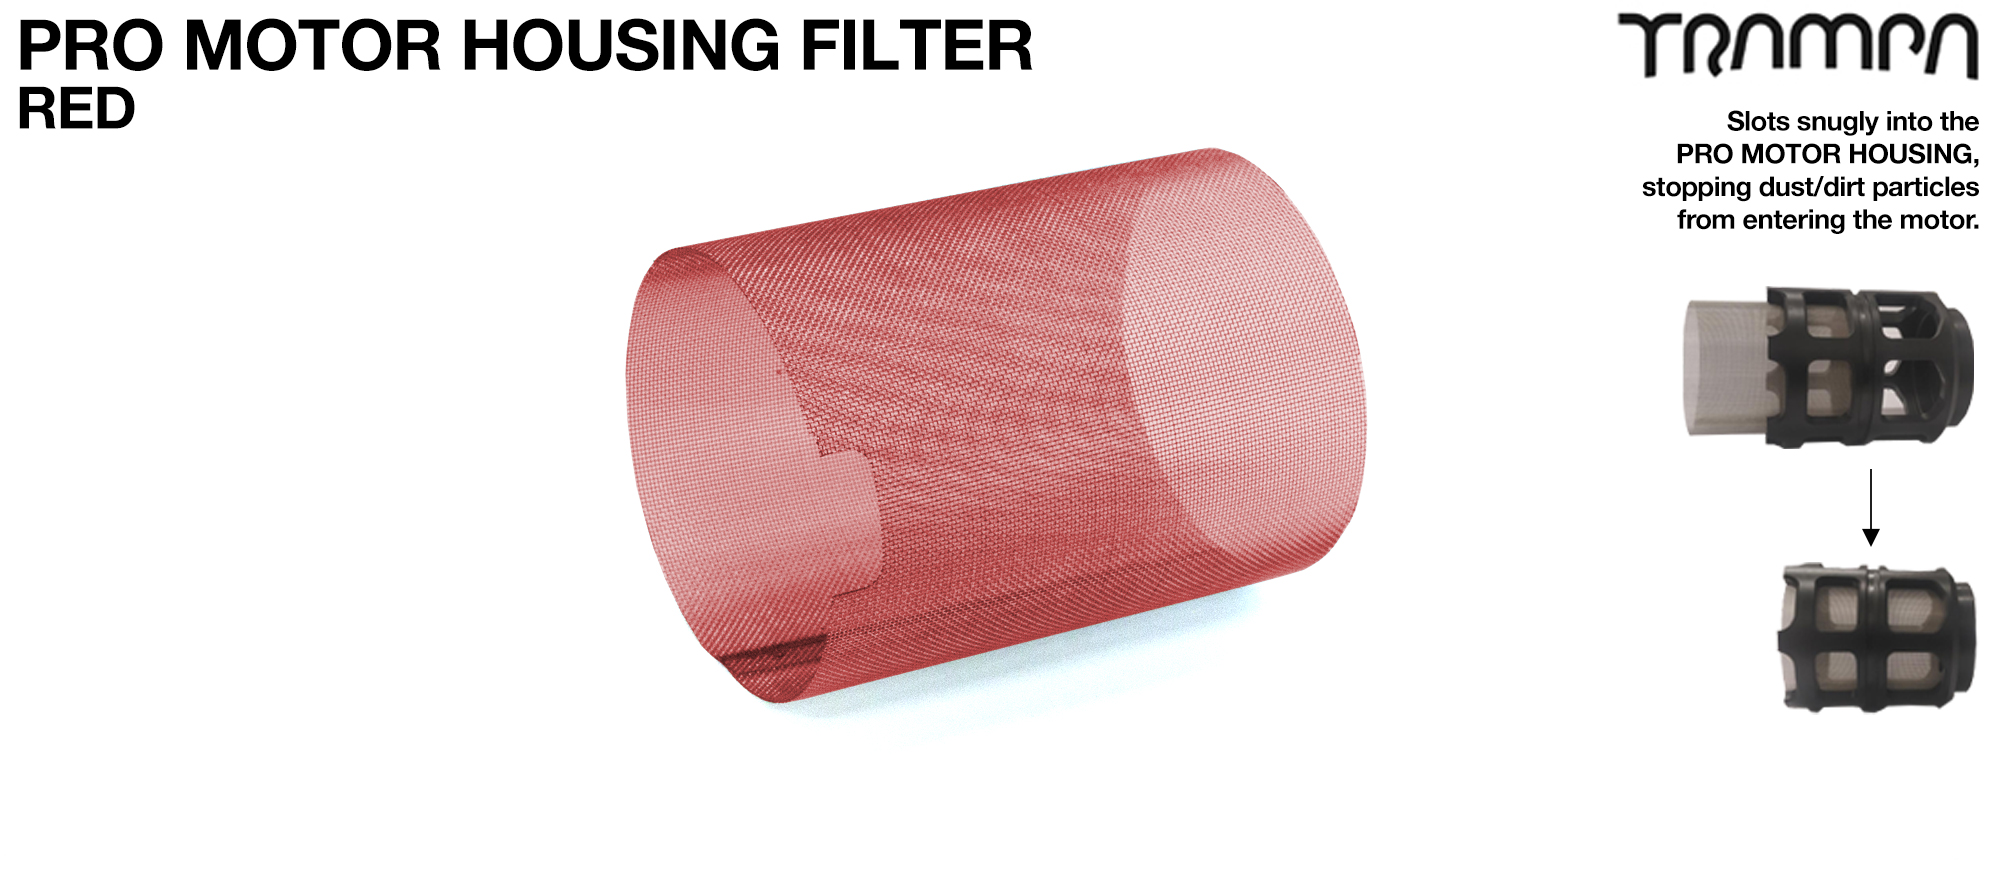 MkII Motor Protection Cover MESH FILTER - RED